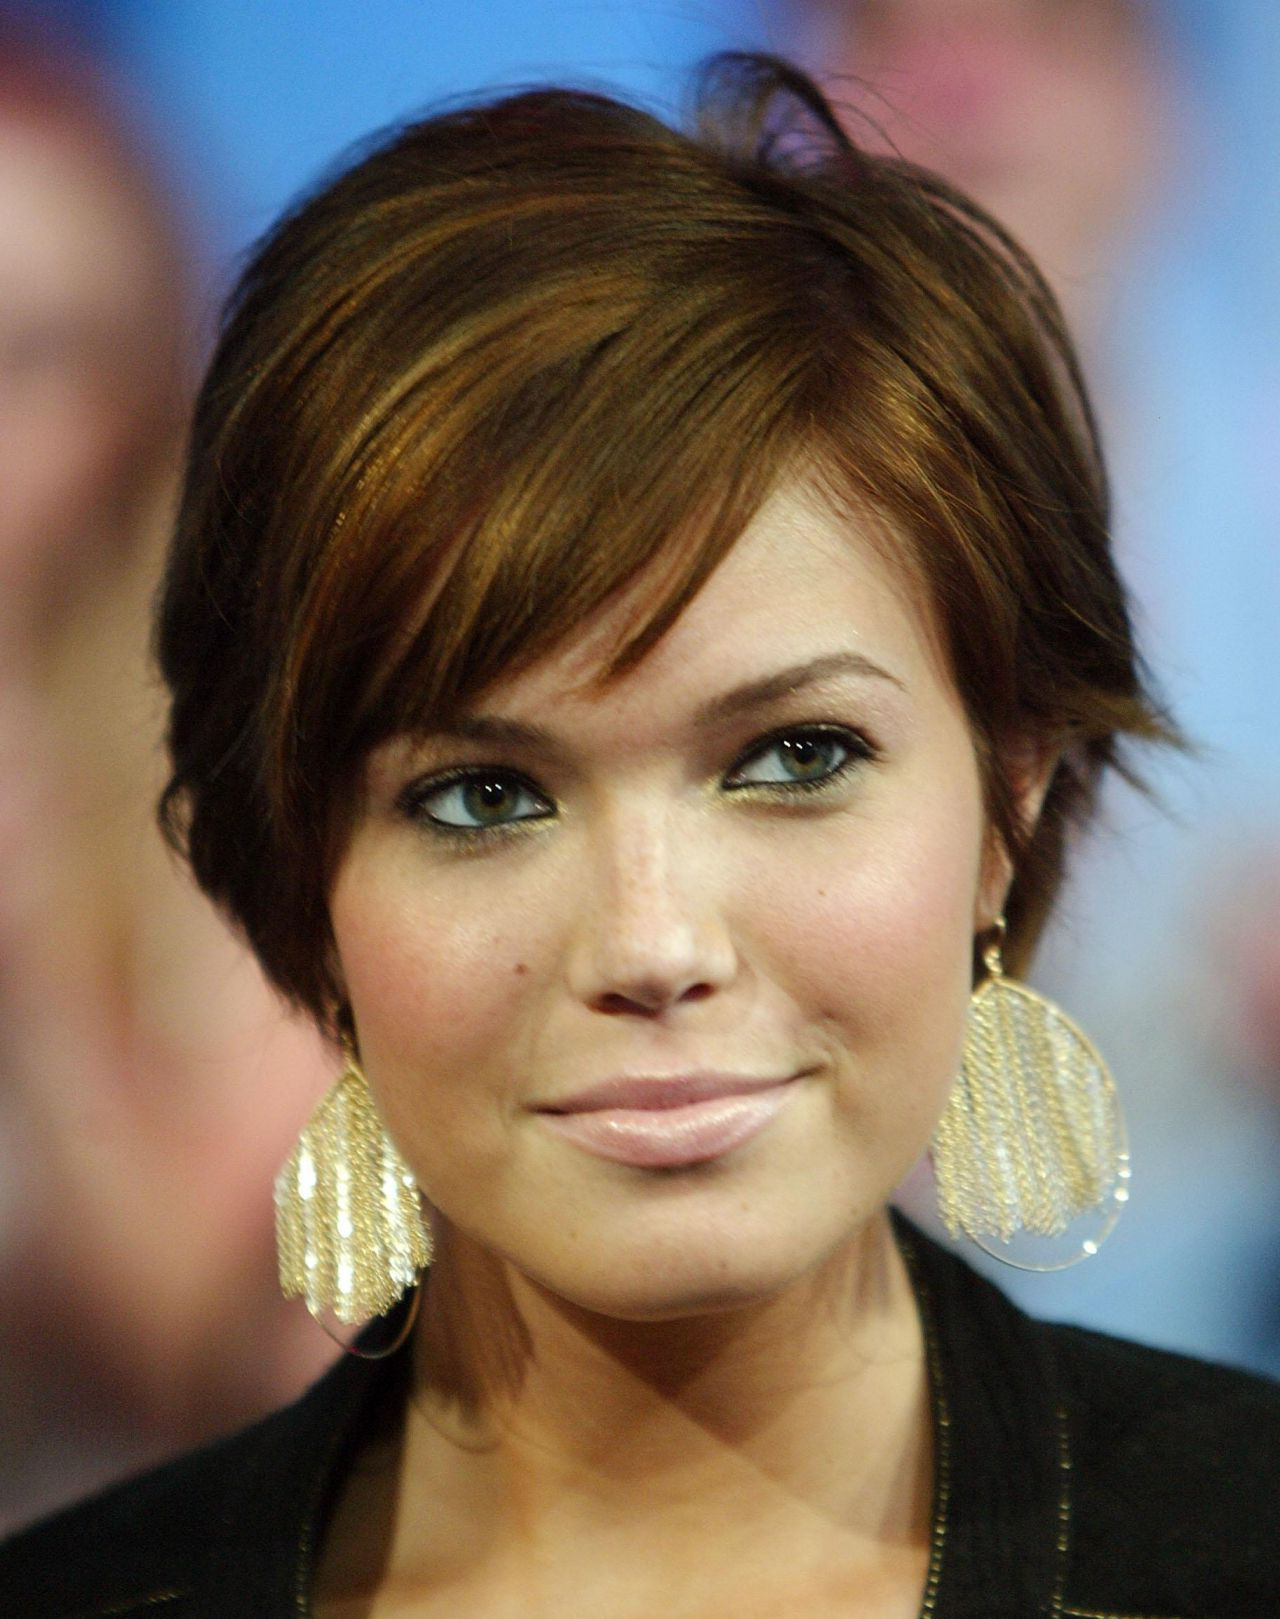 Short Female Hairstyles For Round Faces 2018 | Beauty | Pinterest In Short Hairstyles For Chubby Face (View 16 of 25)